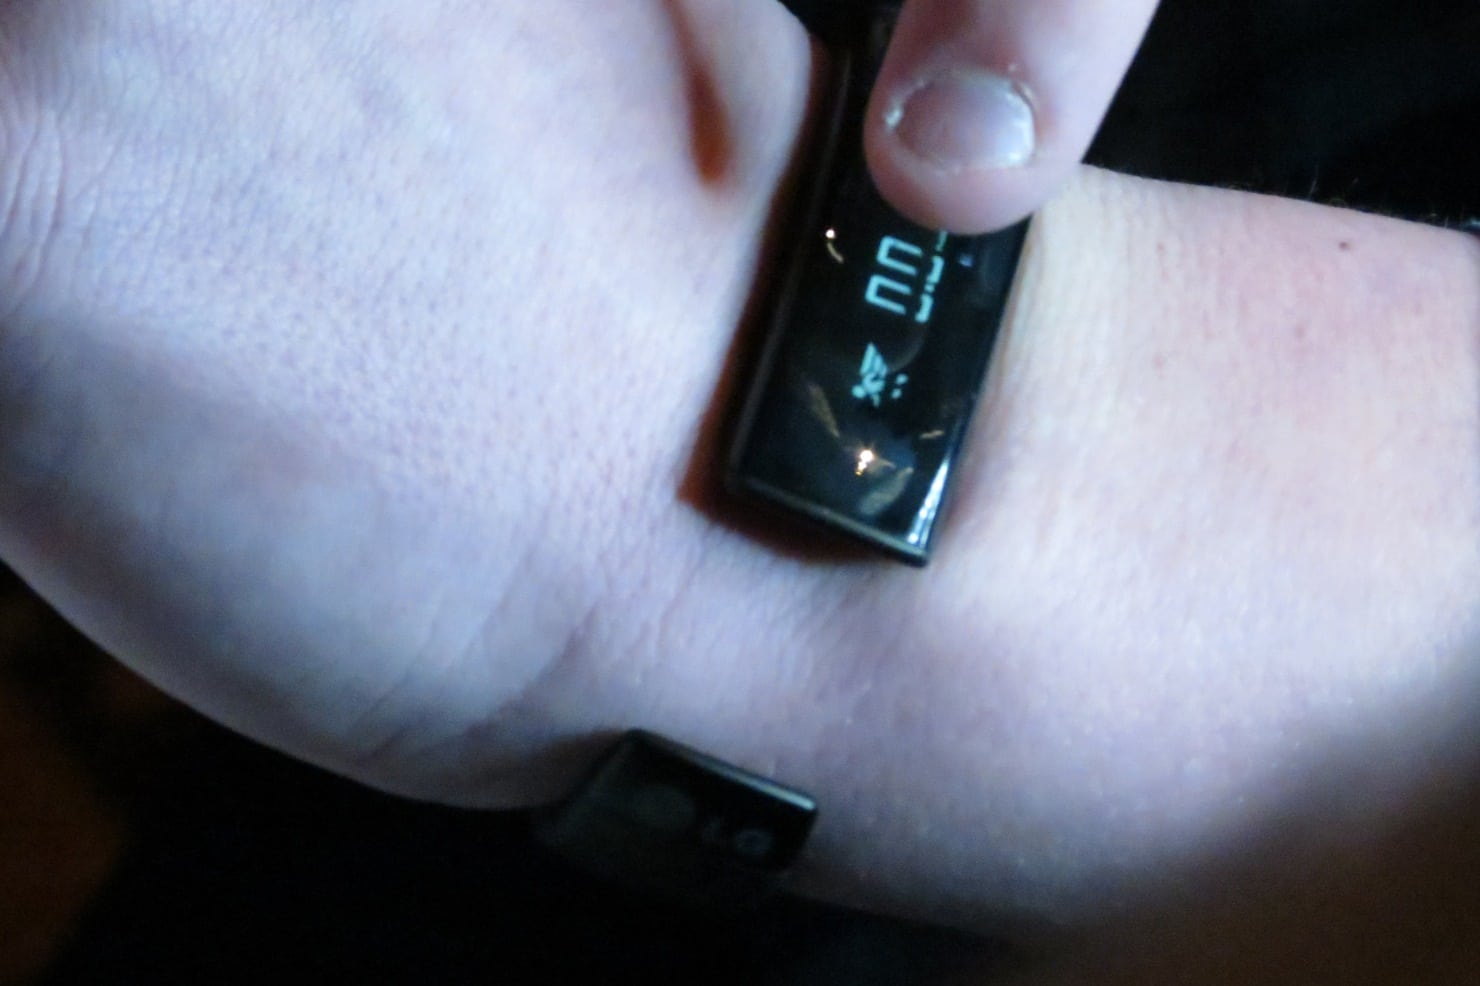 OLED Display on Lifeband Touch